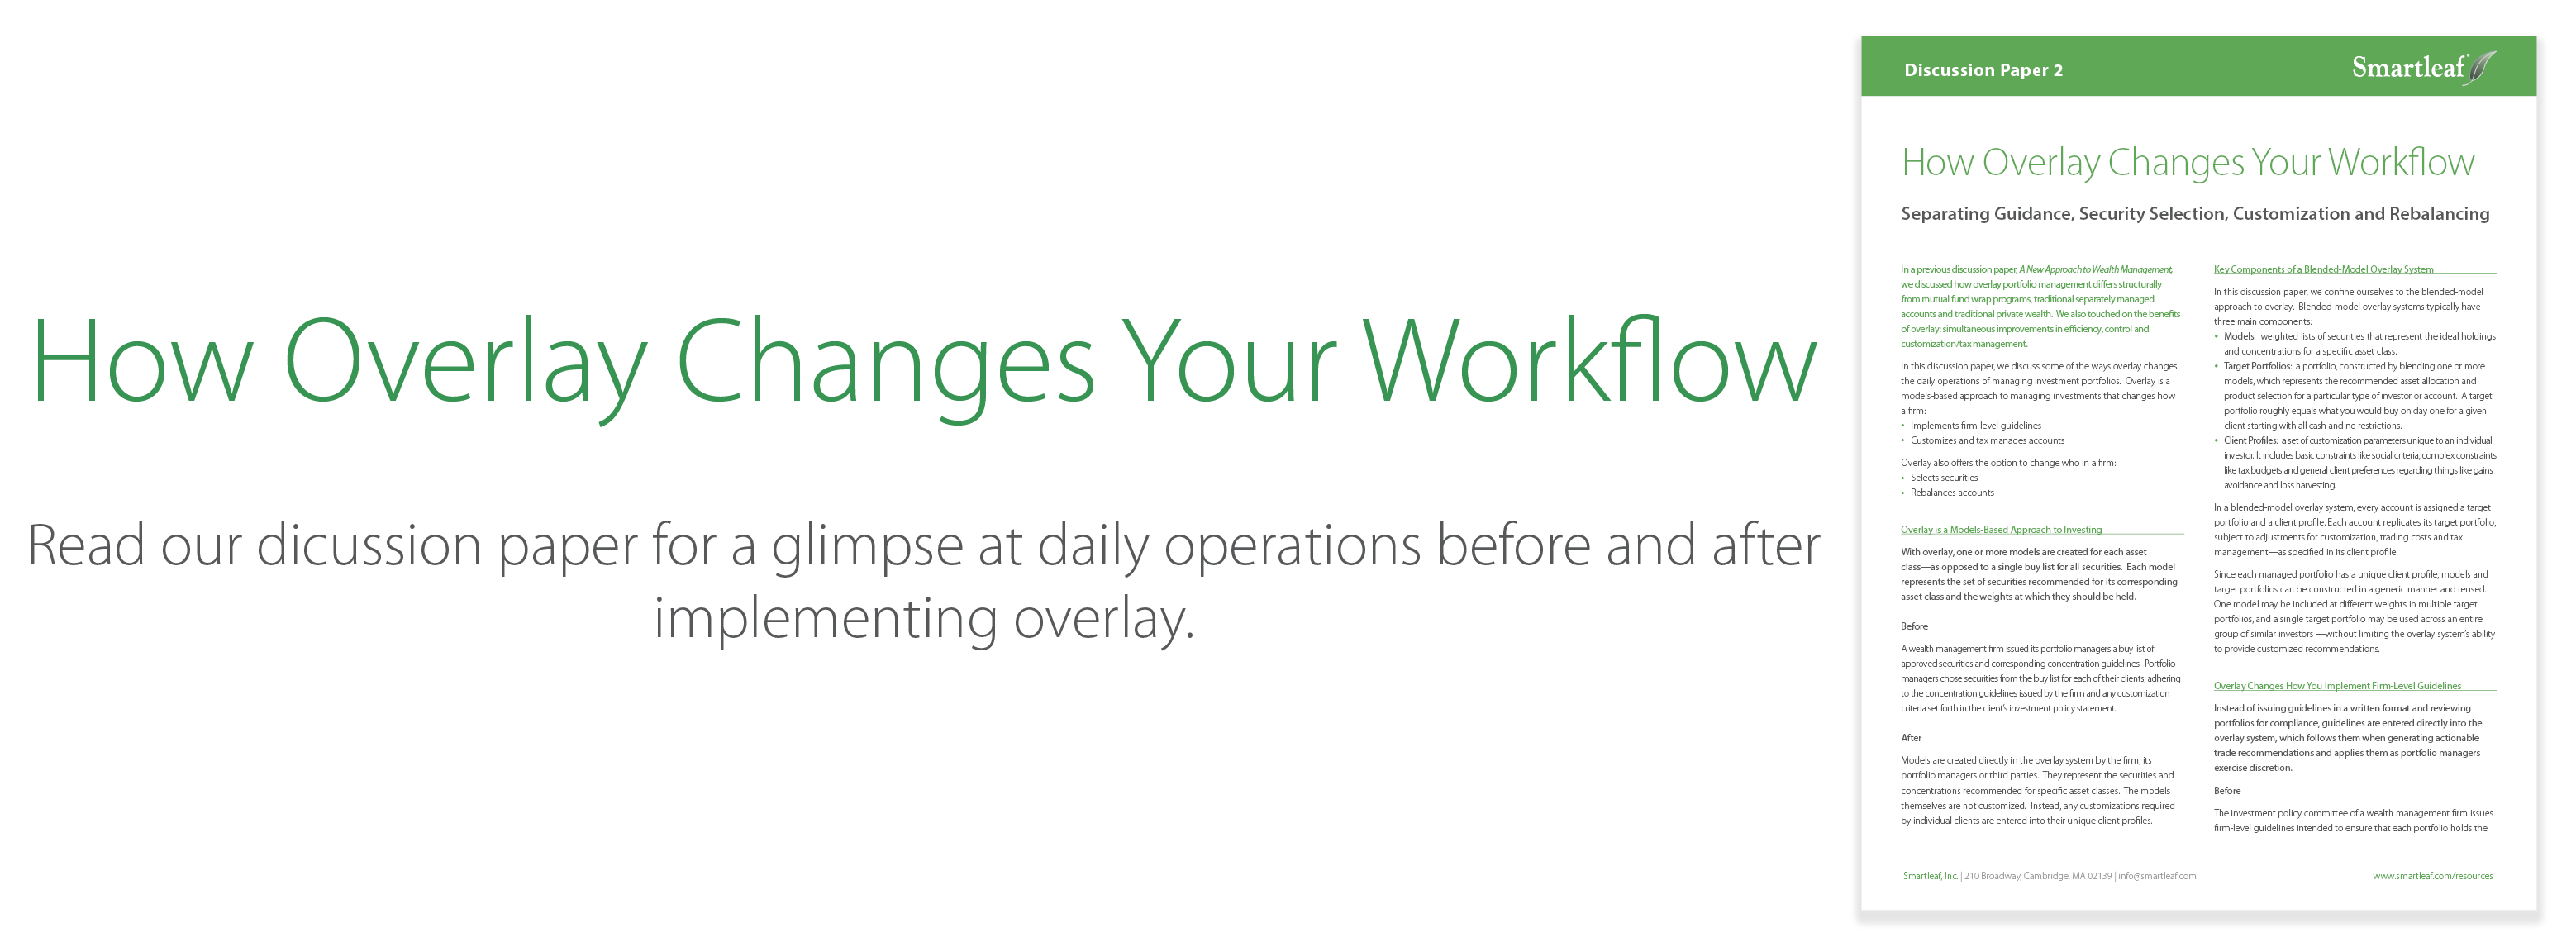 How Overlay Changes Workflow